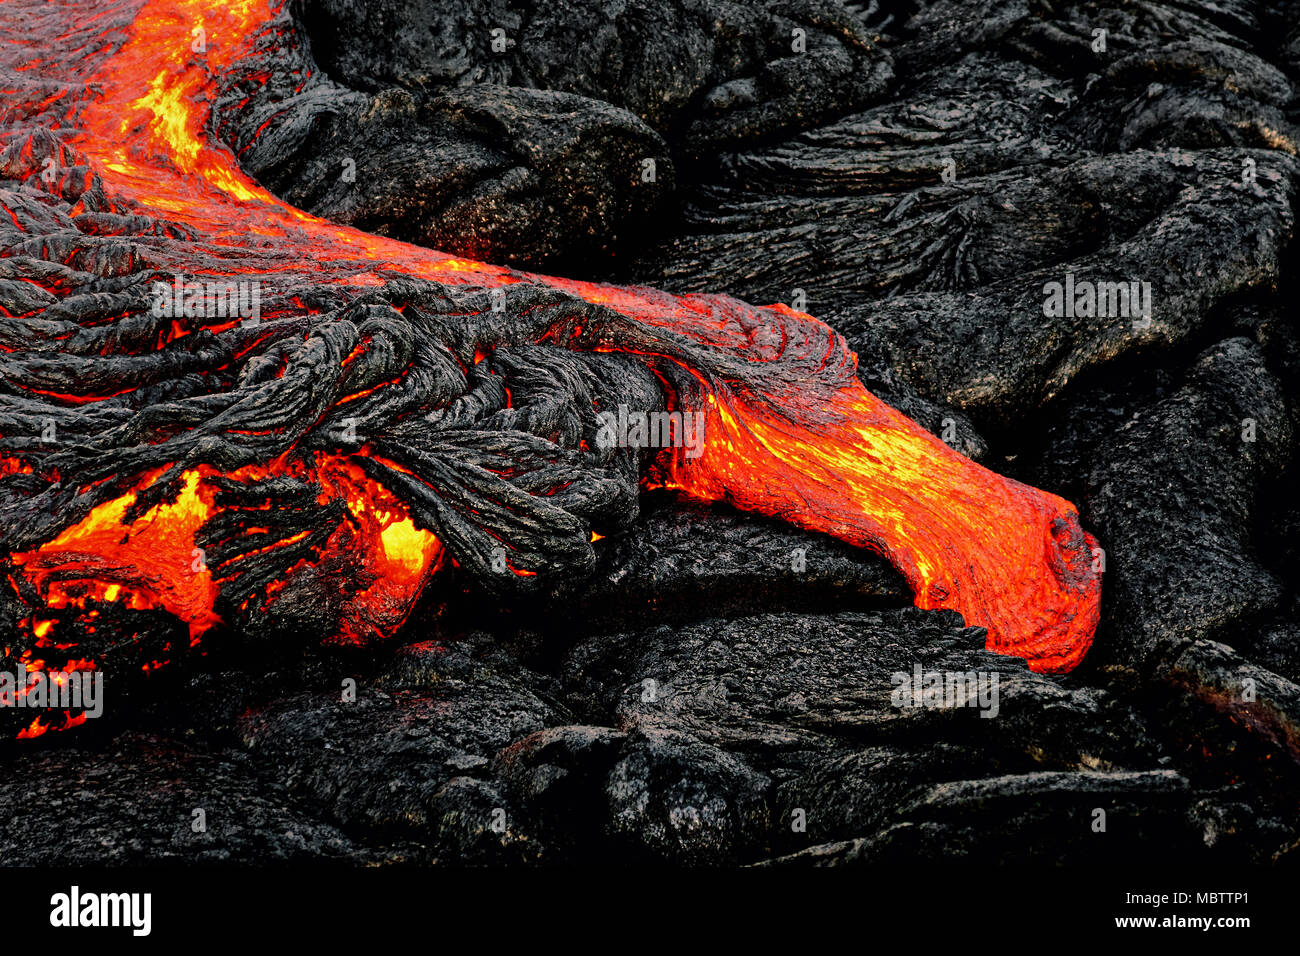 Hot magma escapes from an earth column as part of an active lava flow, the glowing lava slowly cools and freezes - Location: Hawaii, Big Island, volca - Stock Image